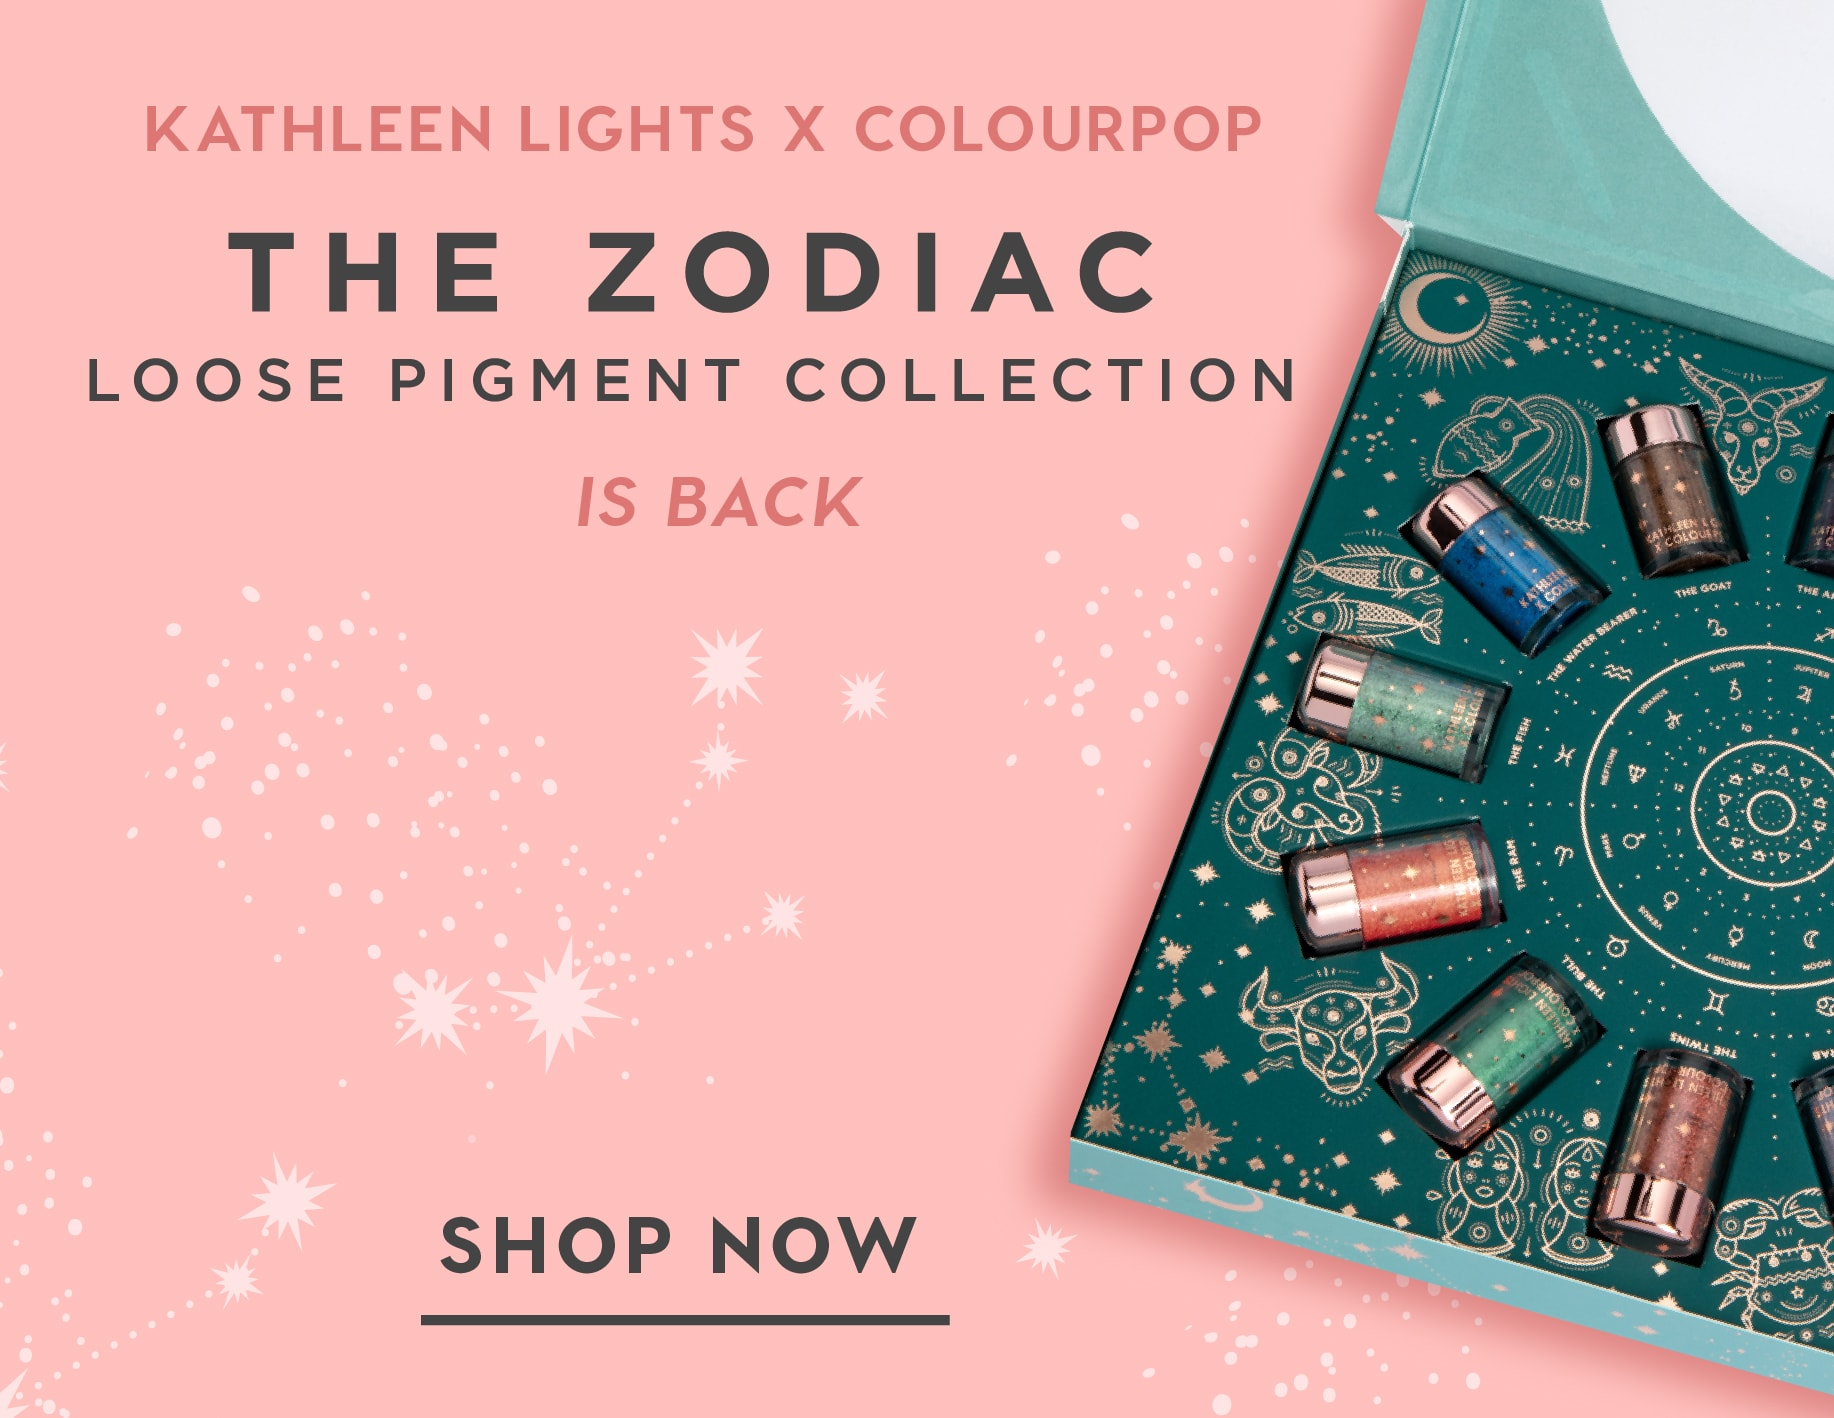 Kathleen Lights x ColourPop Zodiac Collection Back In Stock